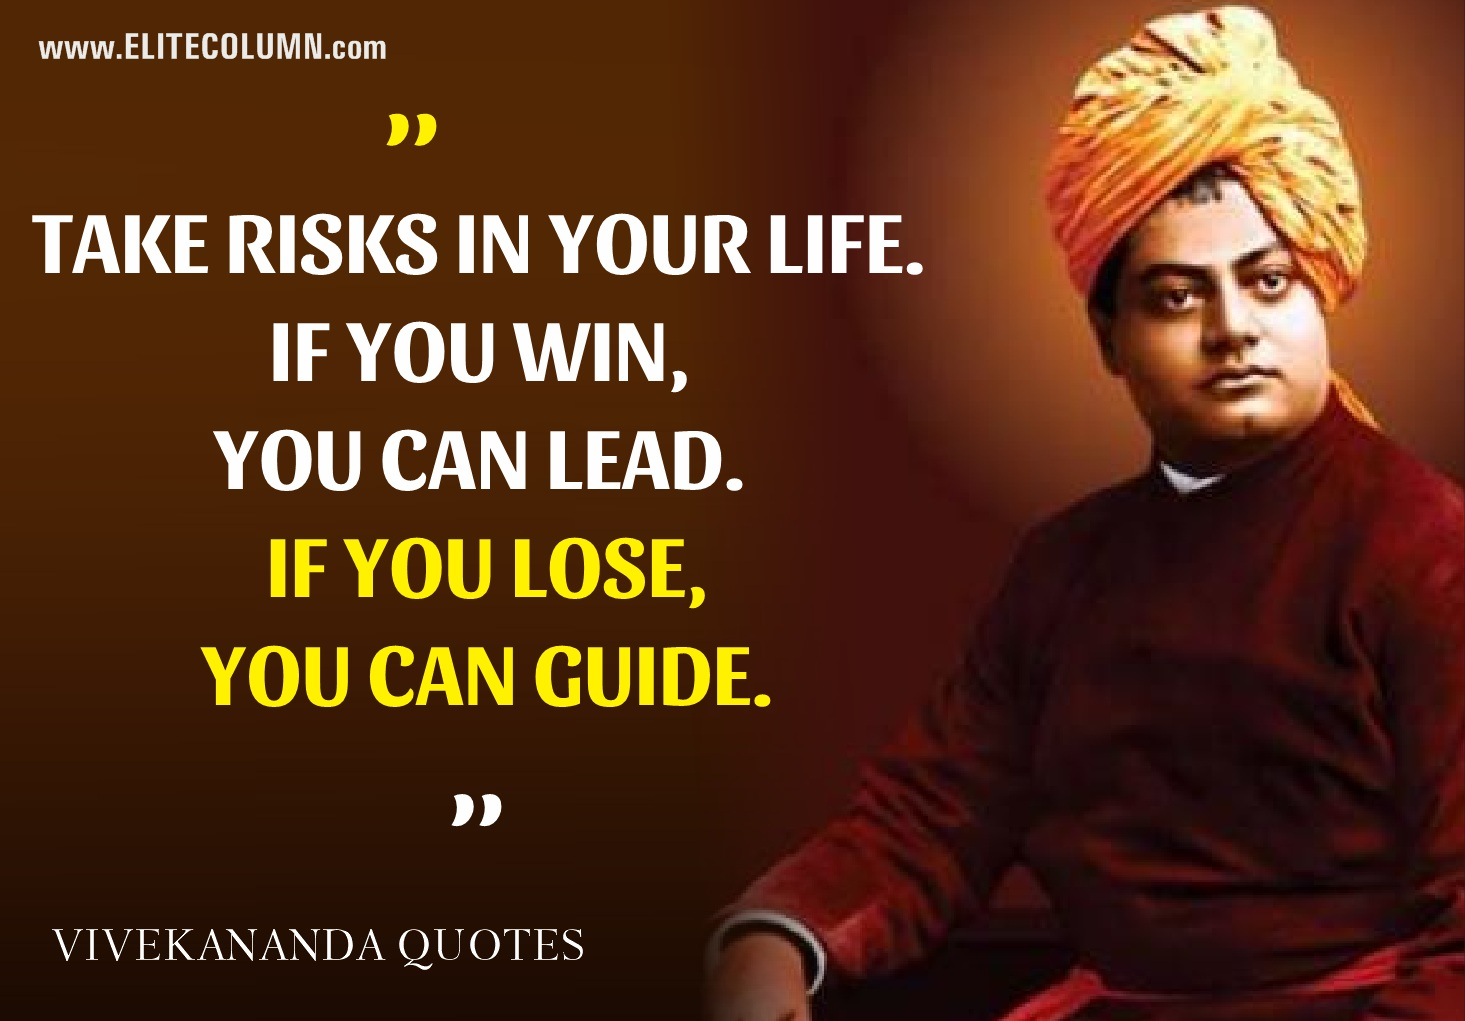 Quotes Vivekananda Captivating 10 Swami Vivekananda Quotes Which Are Still Relevant  Elitecolumn